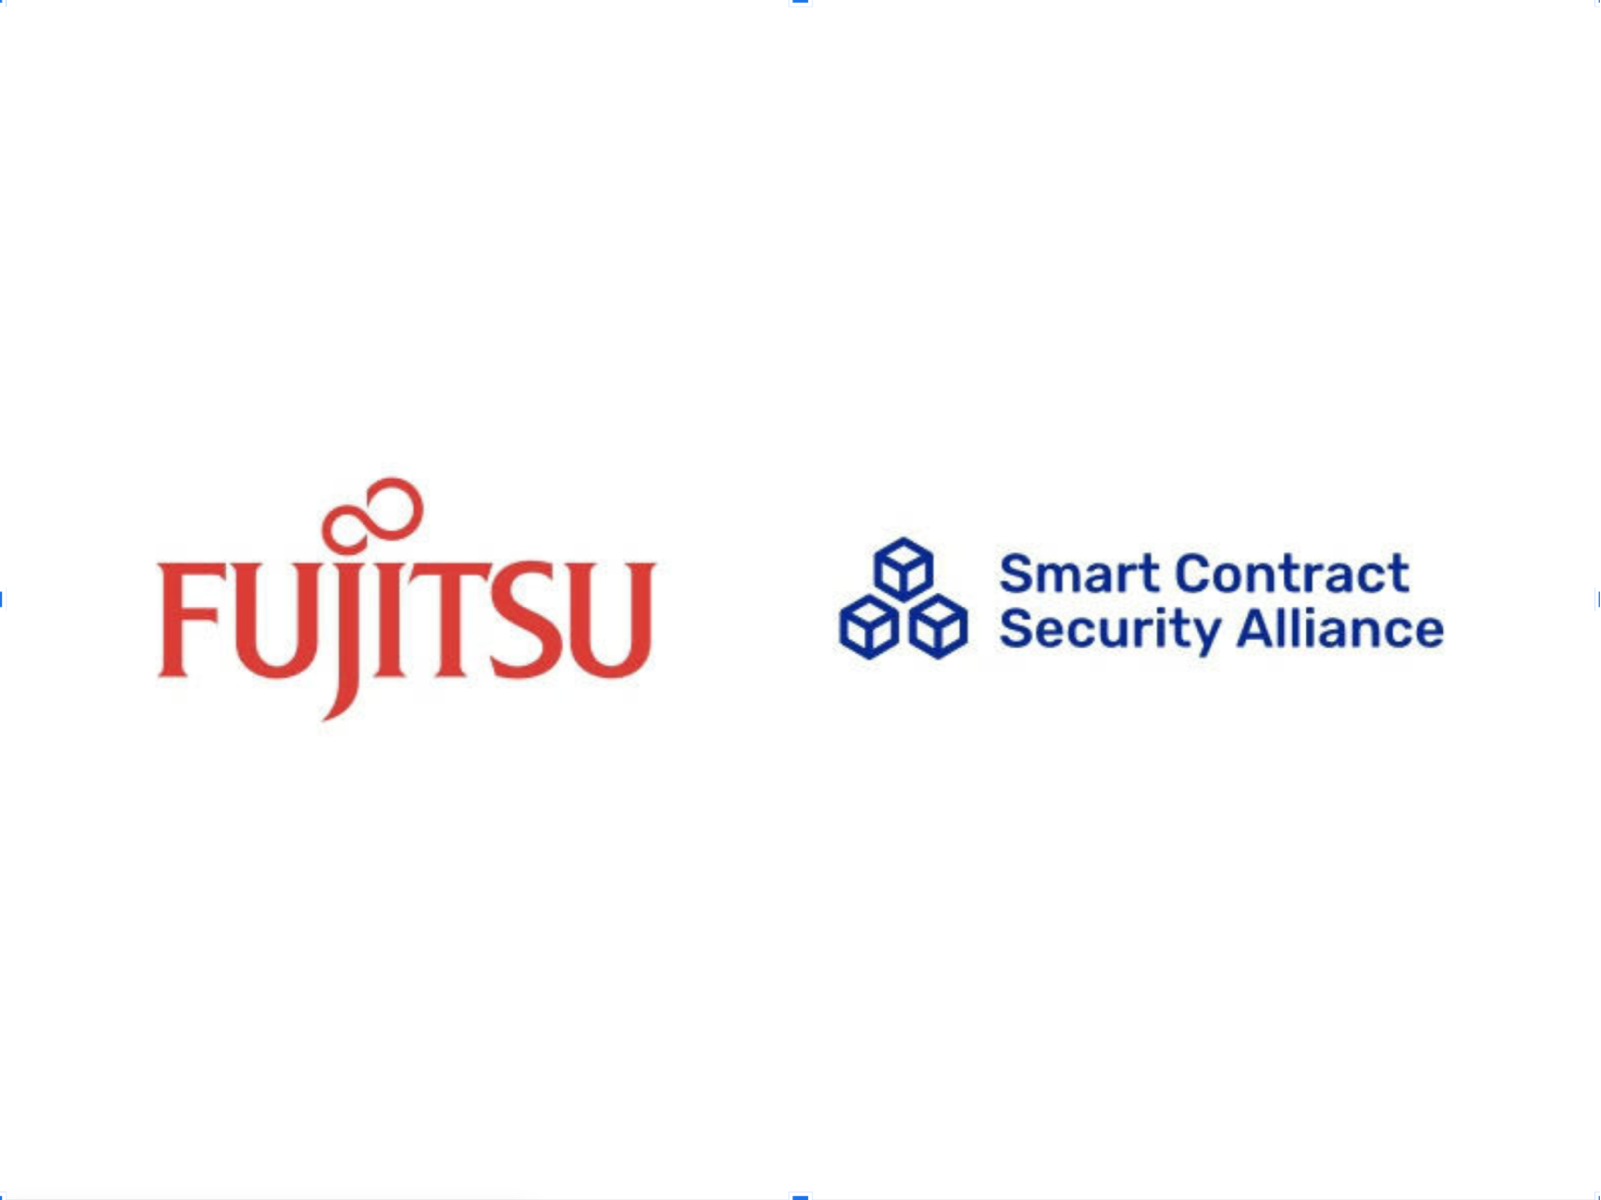 Featured Article: Smart Contract Security Alliance Adds Fujitsu R&D Center to Its Membership